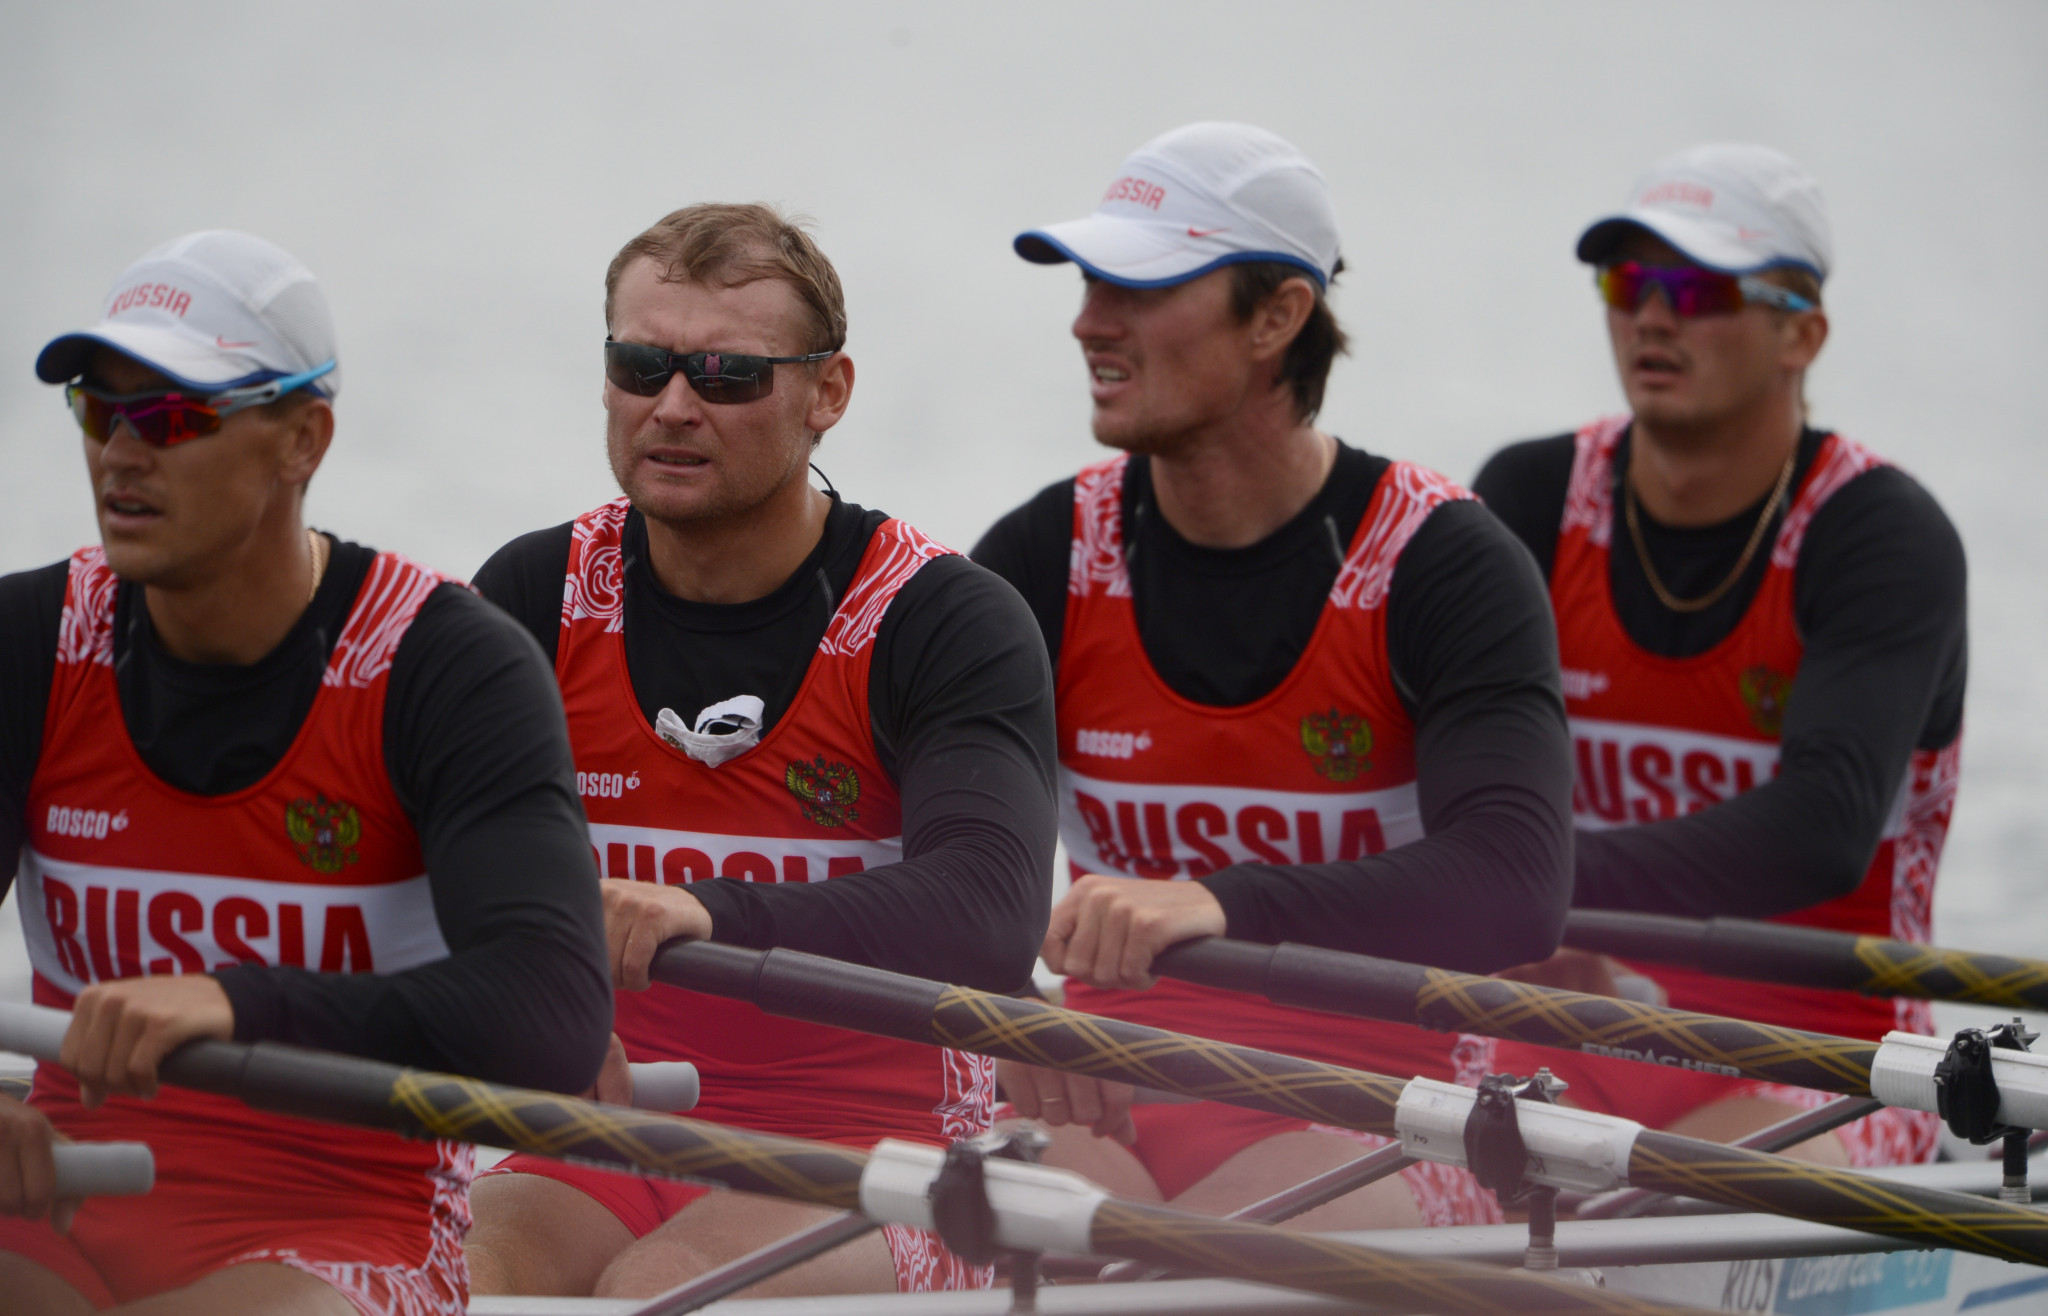 Russian Rowing Federation pull two Tokyo 2020 athletes over positive doping tests